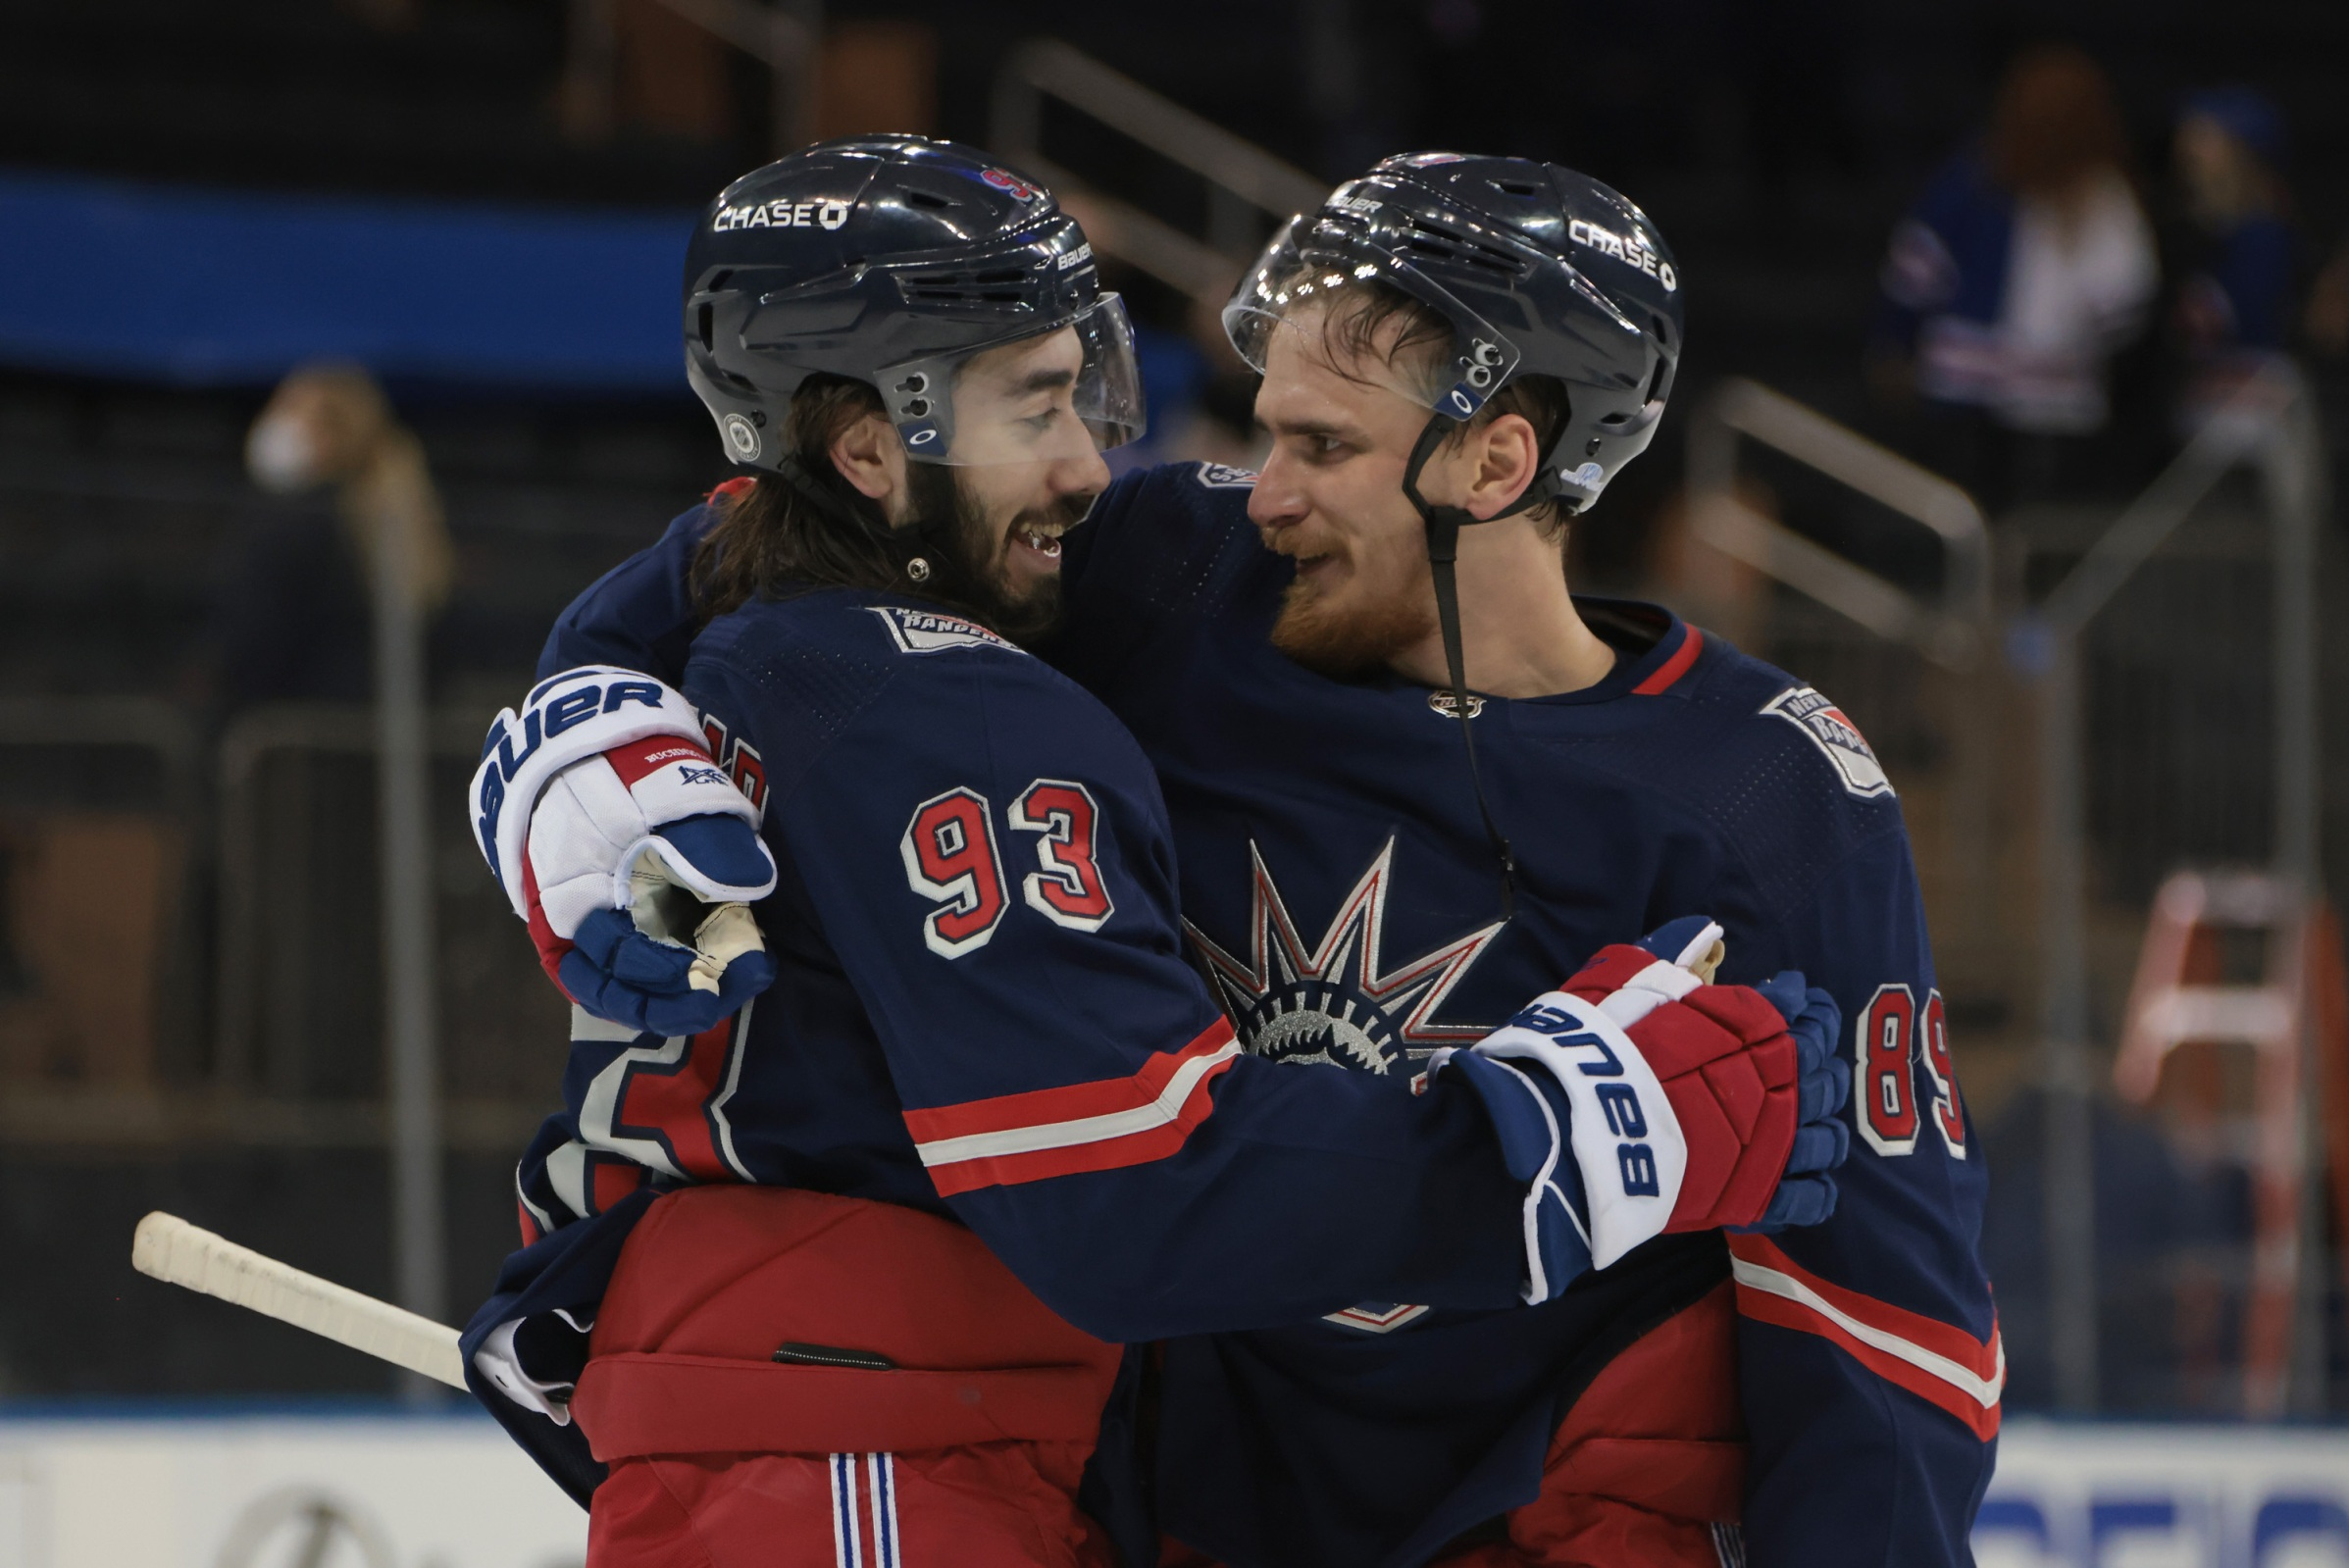 Mika Zibanejad #93 and Pavel Buchnevich #89 of the New York Rangers